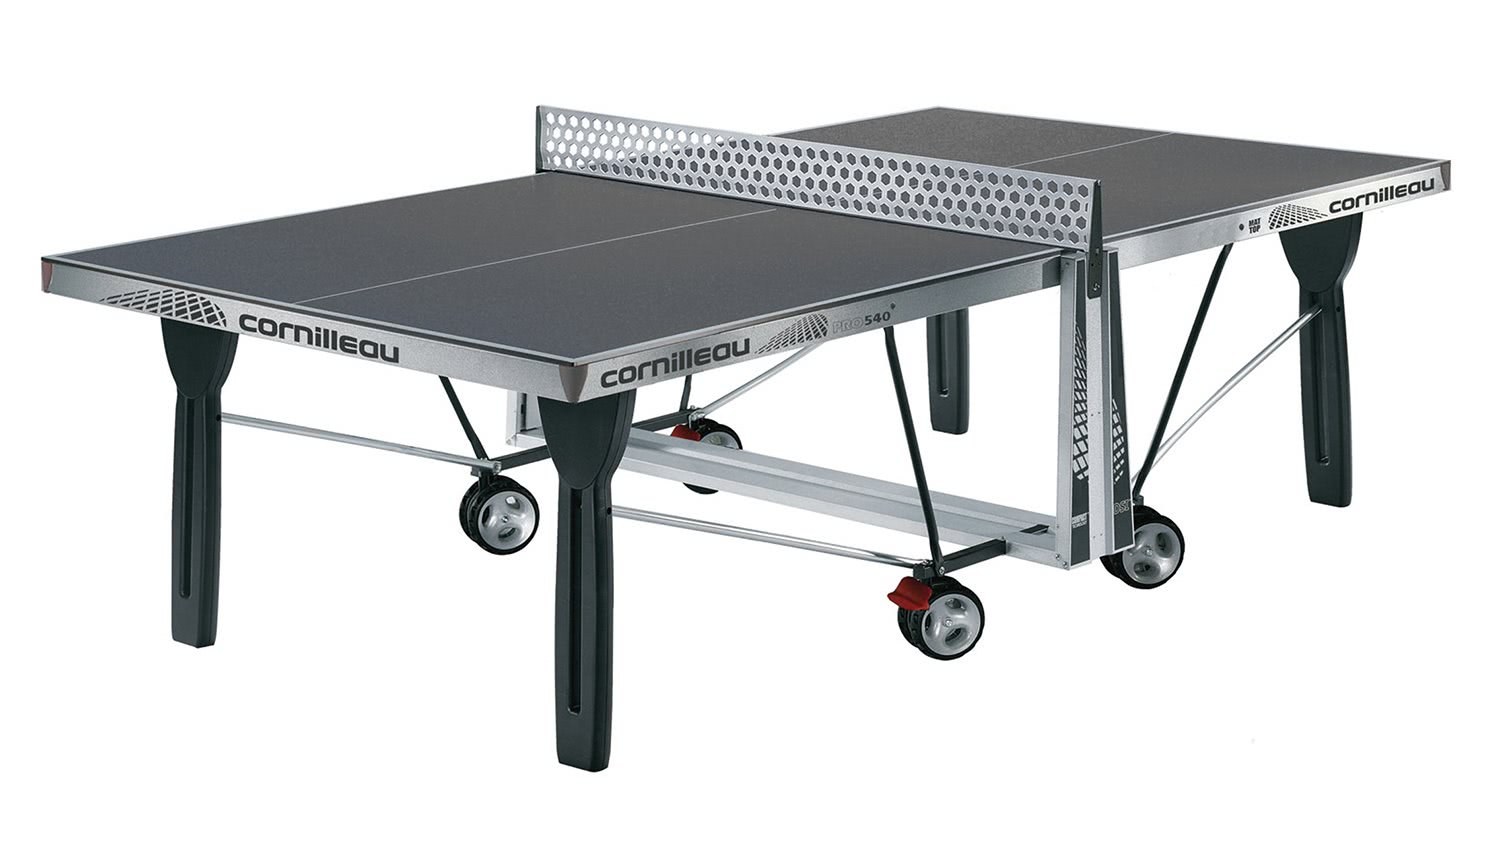 Cornilleau proline 540 rollaway outdoor table tennis 125417 - Table ping pong cornilleau outdoor ...